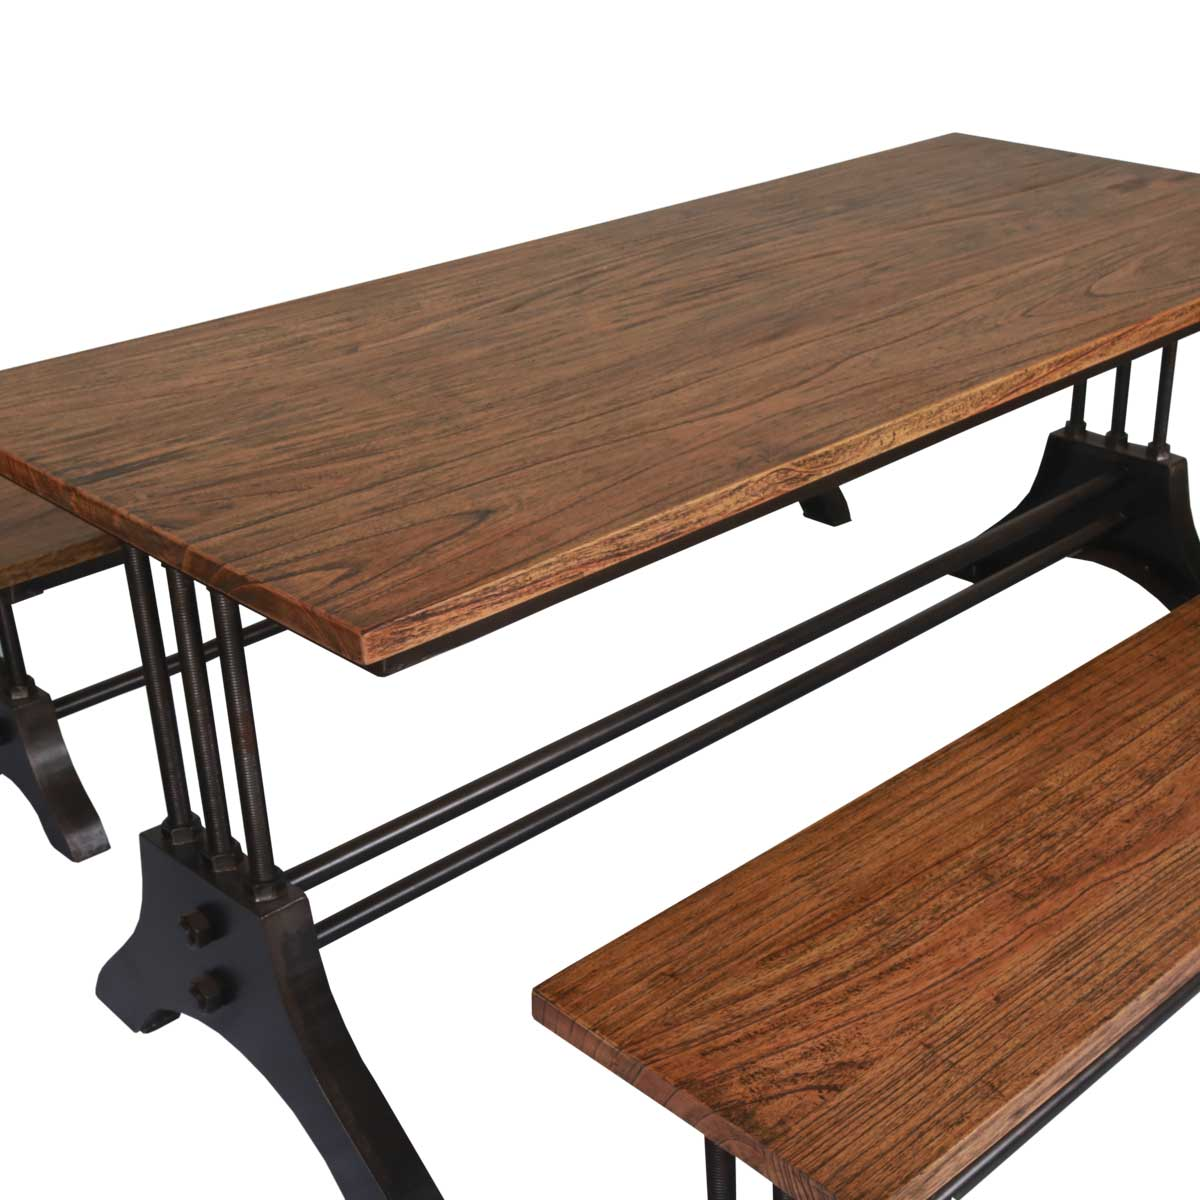 Amanda Trestle Base Reclaimed Wood Industrial Dining Table